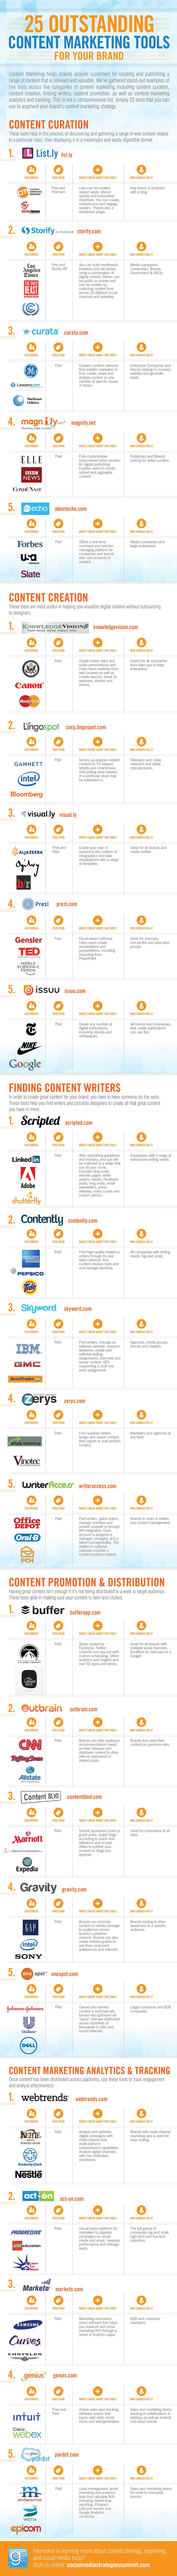 25 Outstanding Content Marketing Tools For Brands To Use In 2014 - infographic